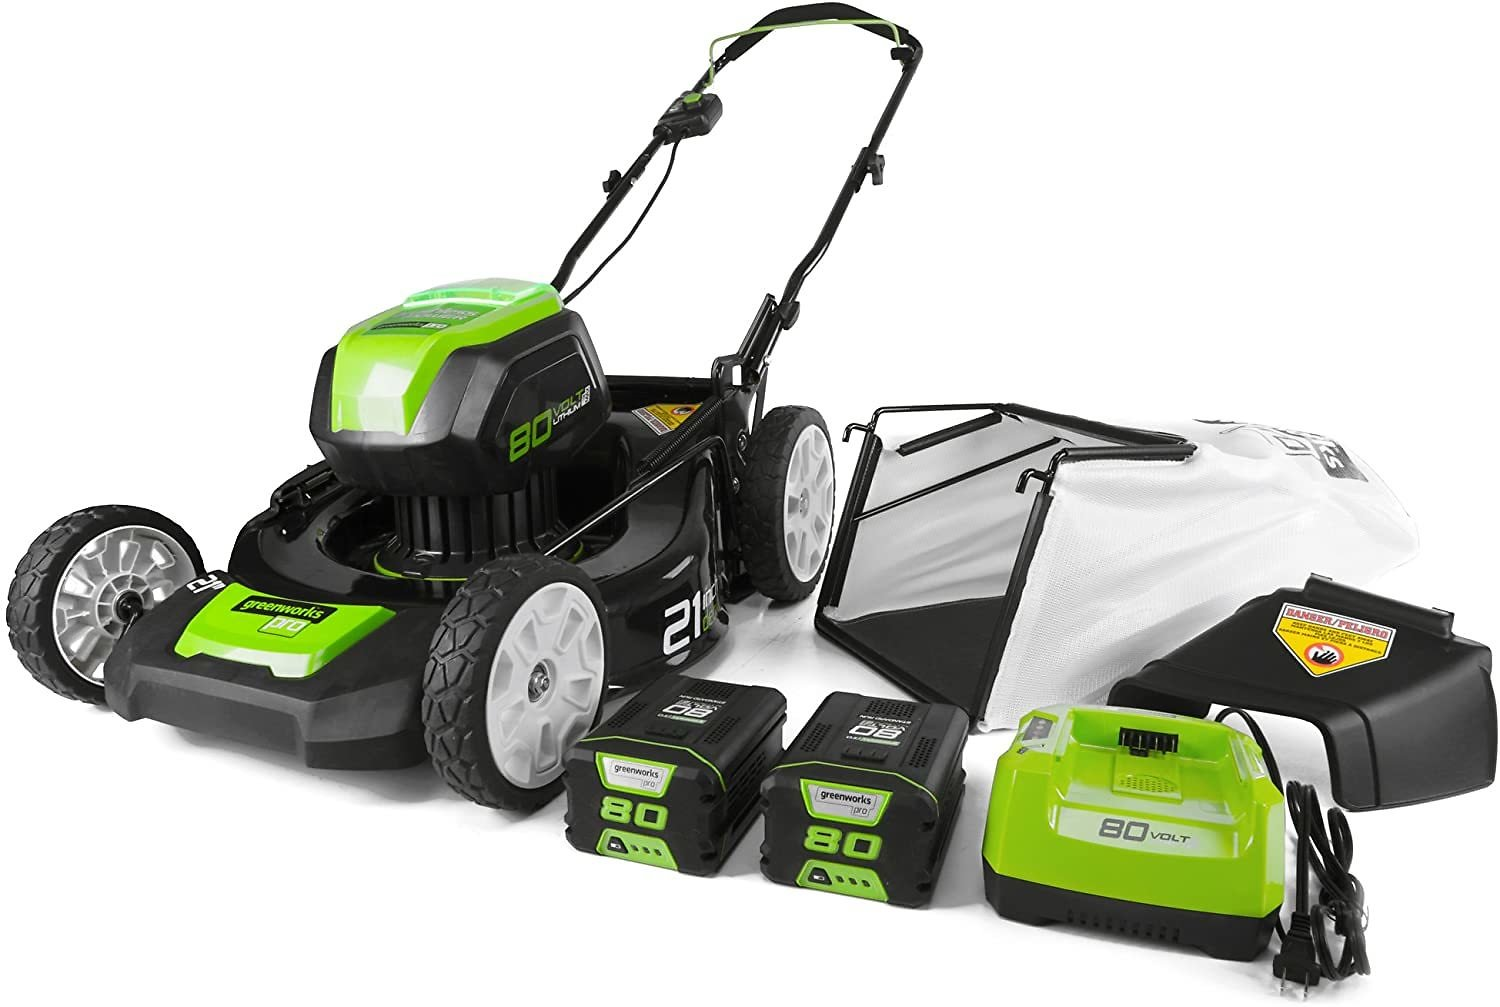 Up to 30% Off On Greenworks Outdoor Tools